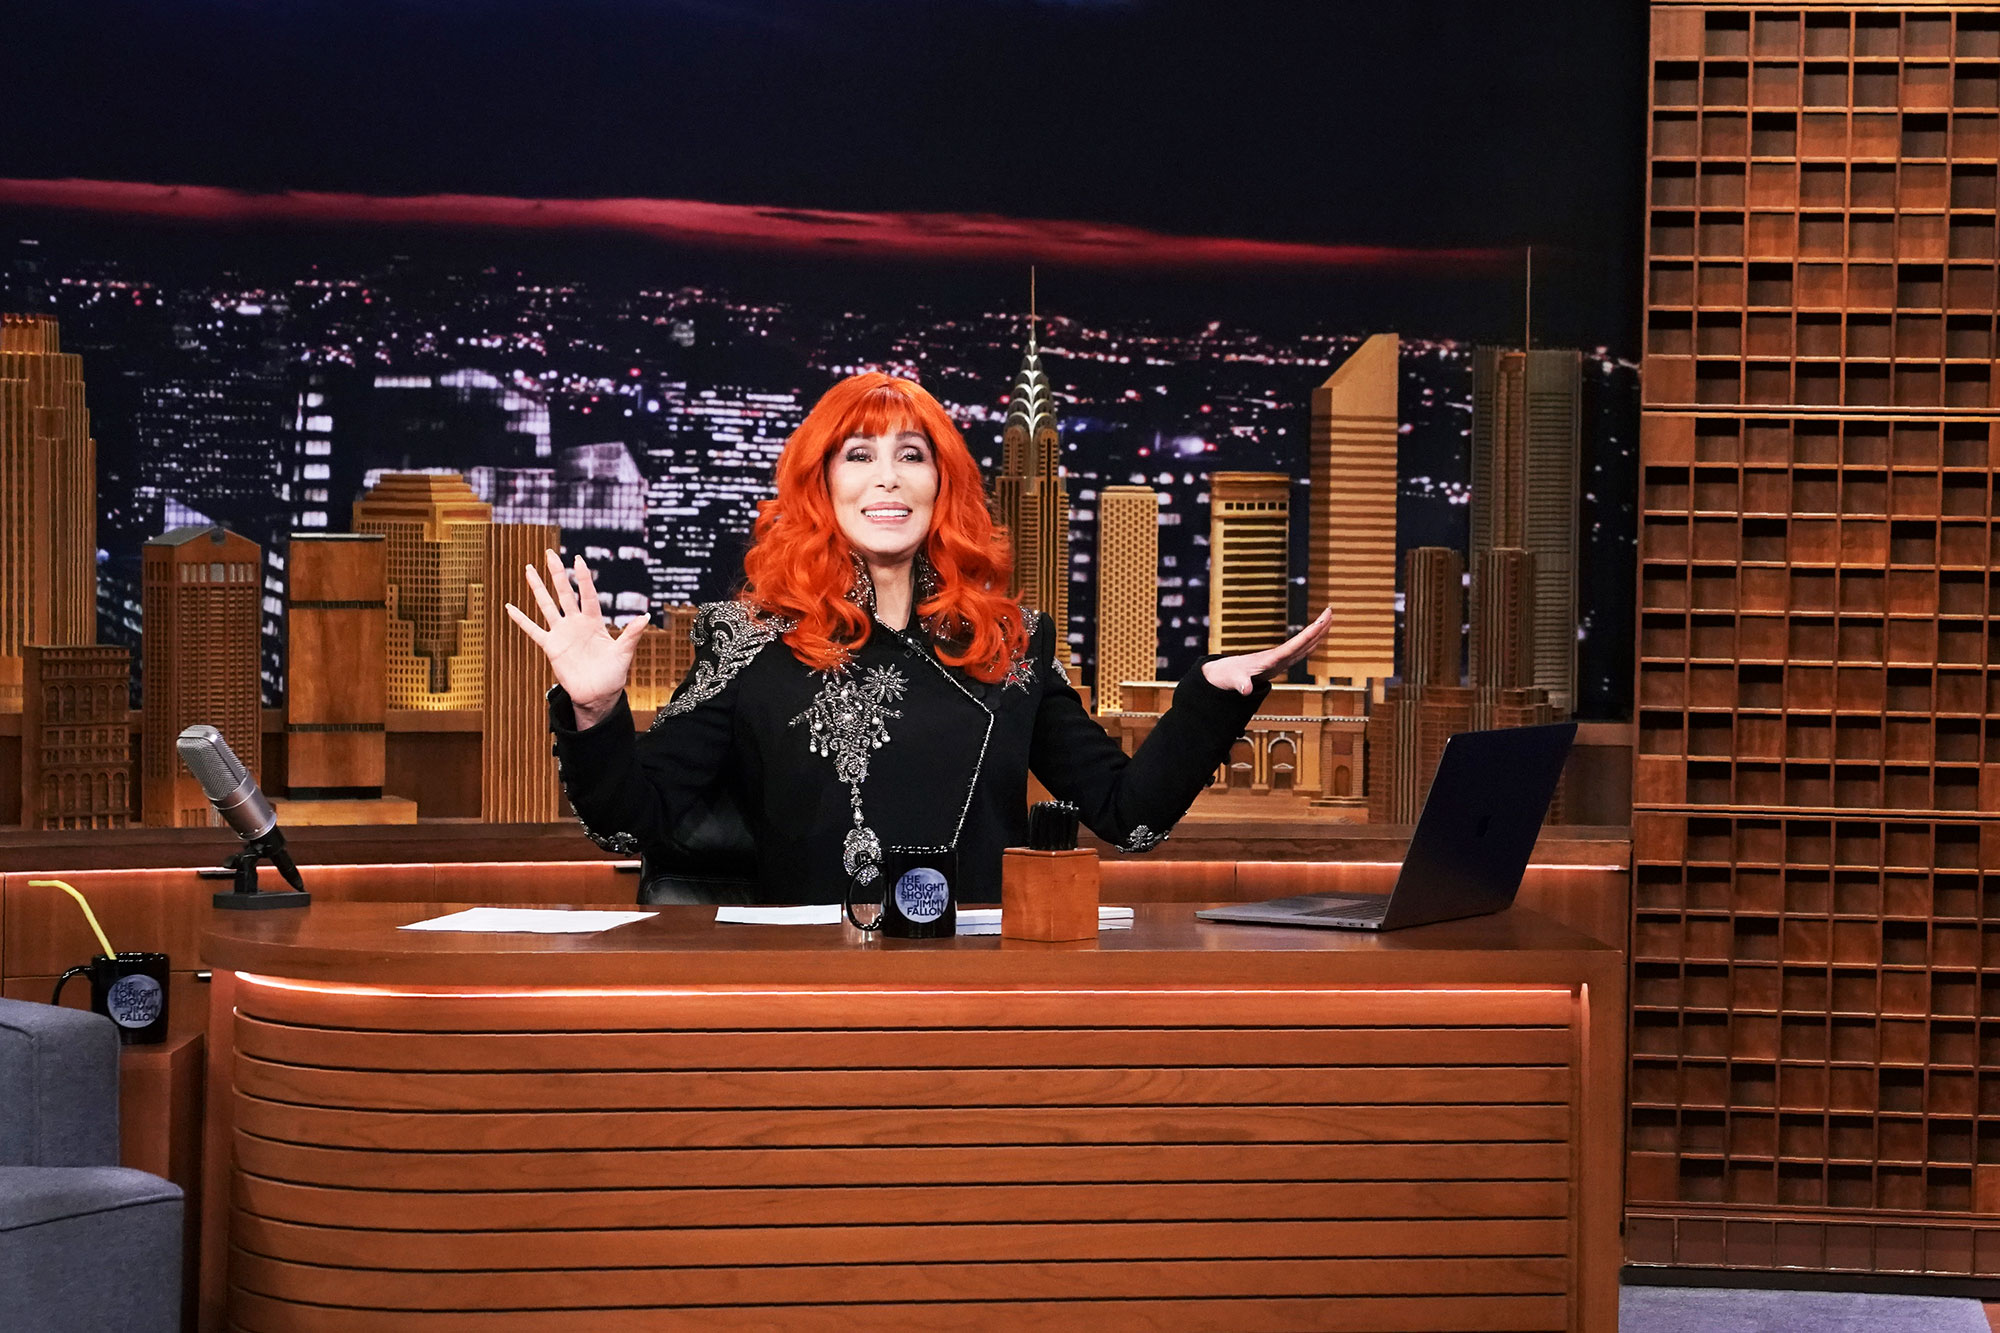 Cher Go Bold in Brightly Colored Wigs - Typically known for her raven-black hair, the music legend took over The Tonight Show Starring Jimmy Fallon on April 15 wearing a orange-red wig with short fringe.